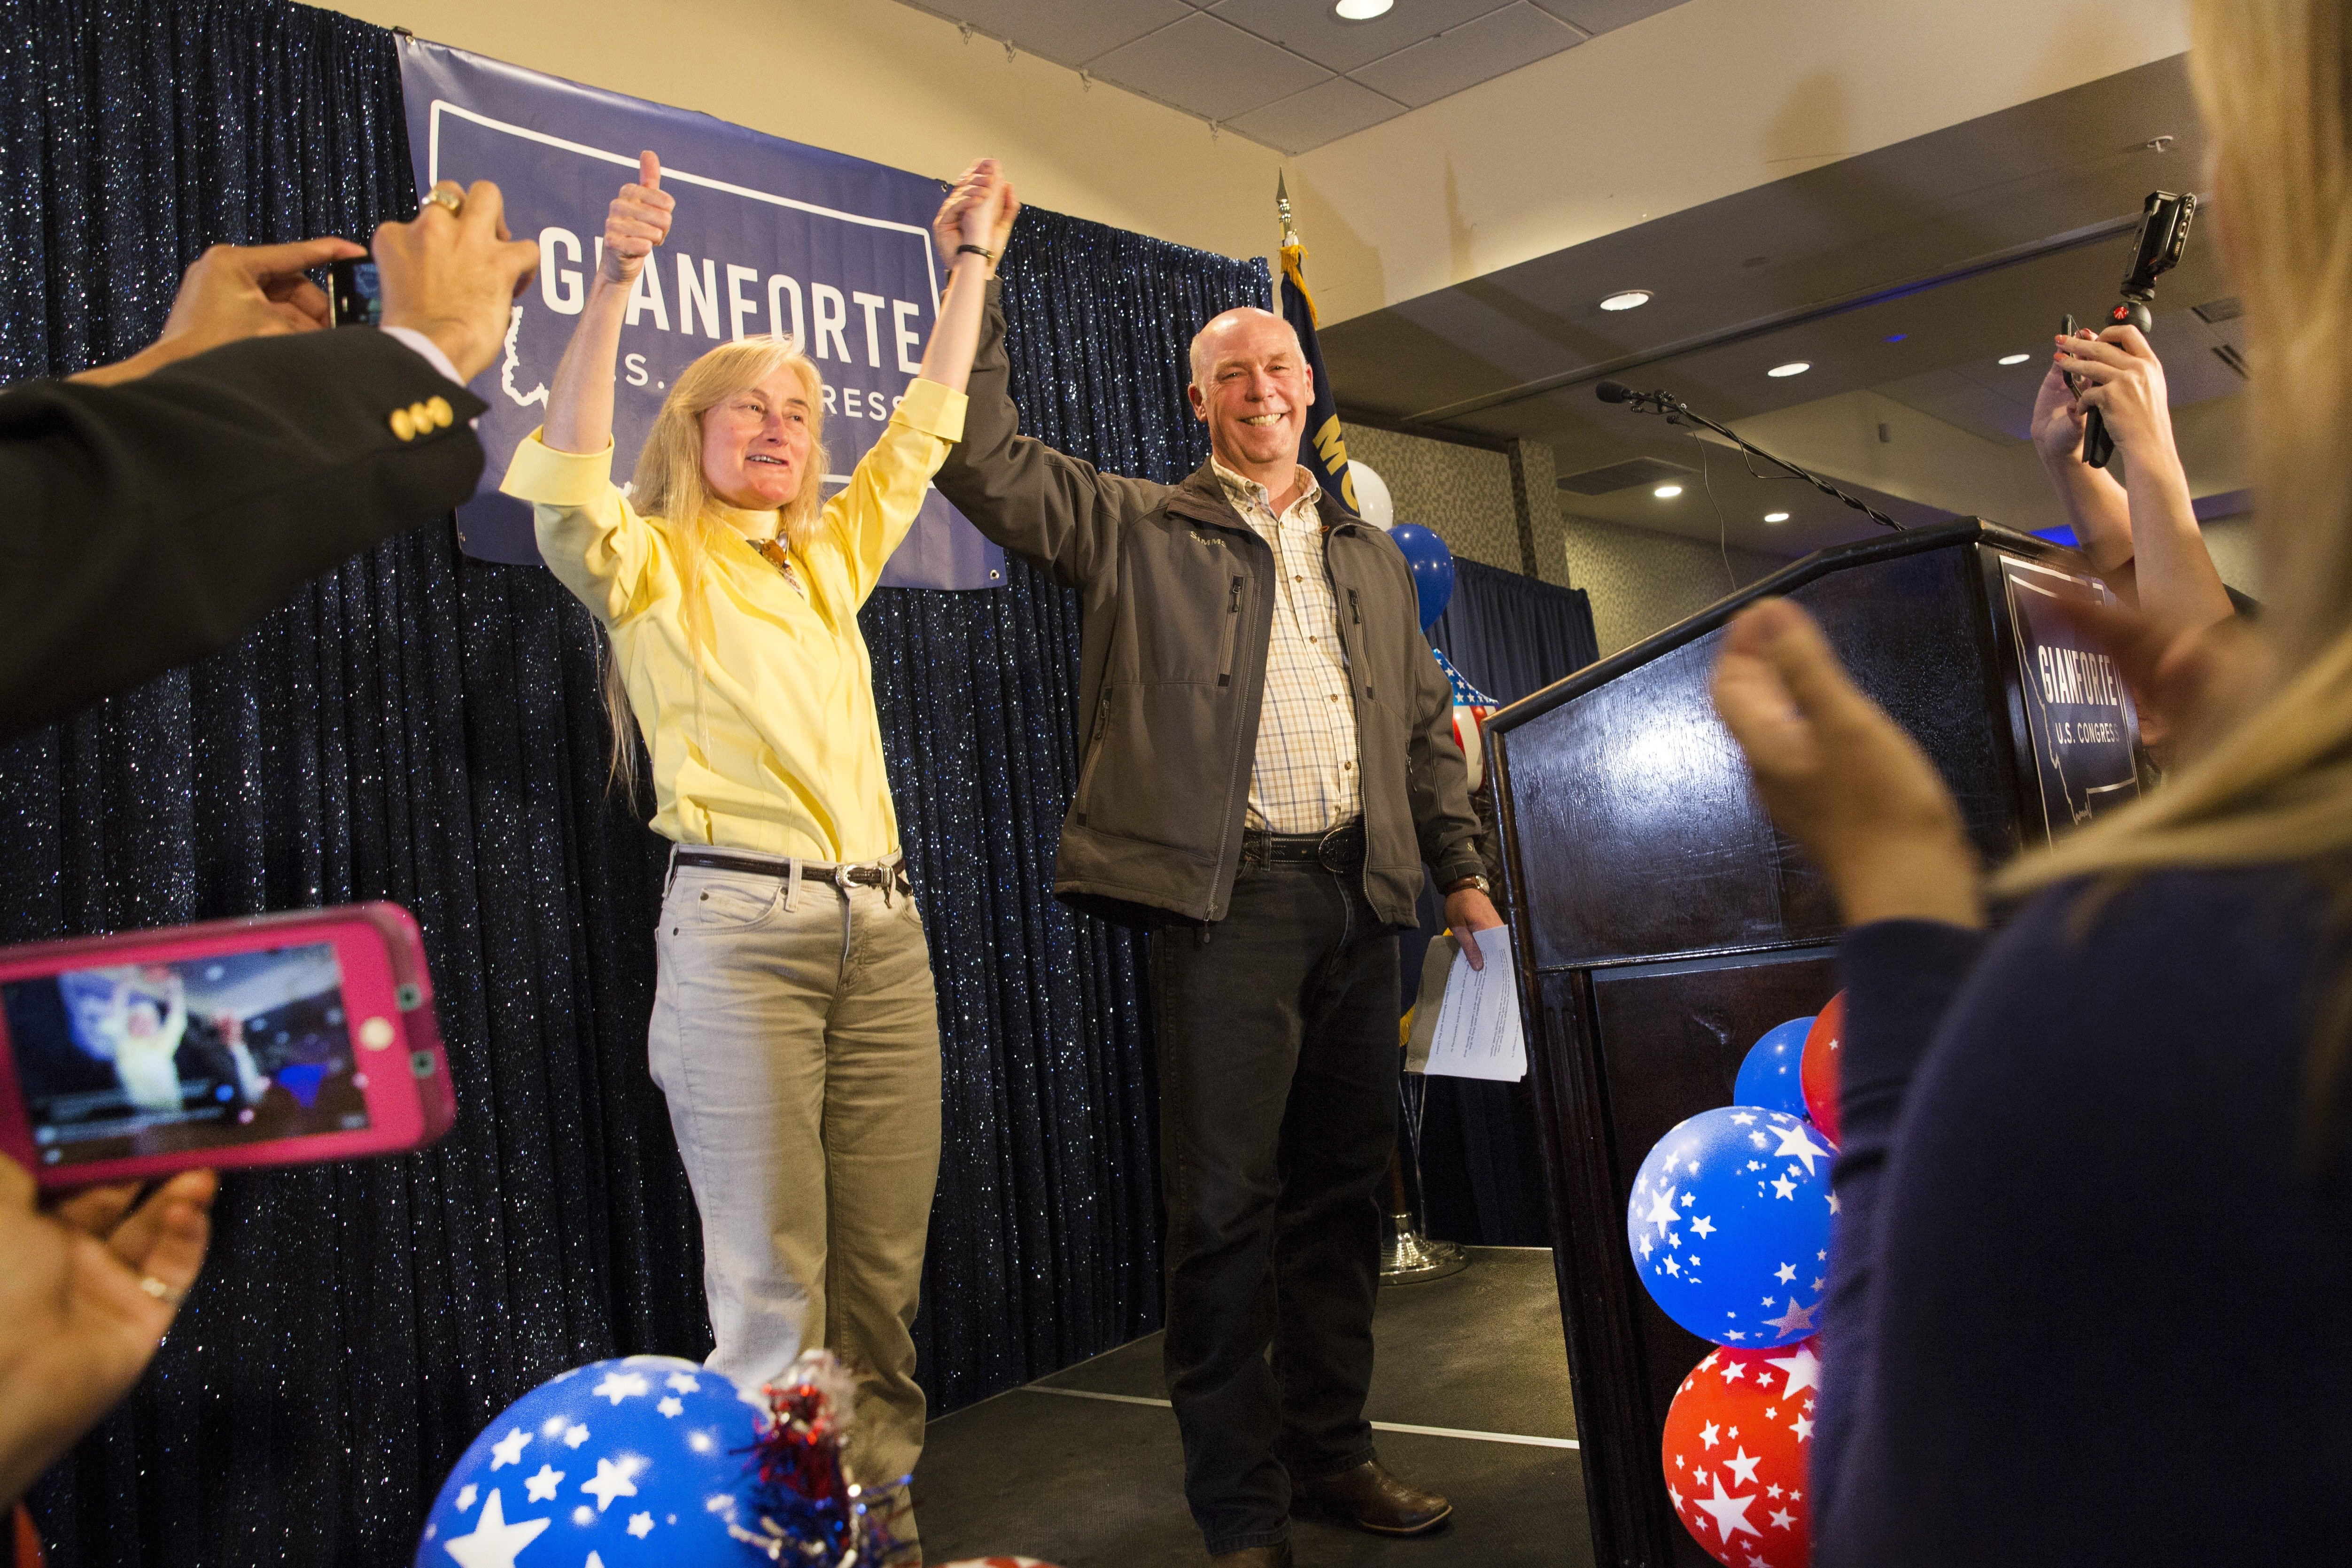 Republican Greg Gianforte celebrates after being declared the winner at an election night party for Montana's special House election, at the Hilton Garden Inn on May 25, 2017 in Bozeman, Montana.